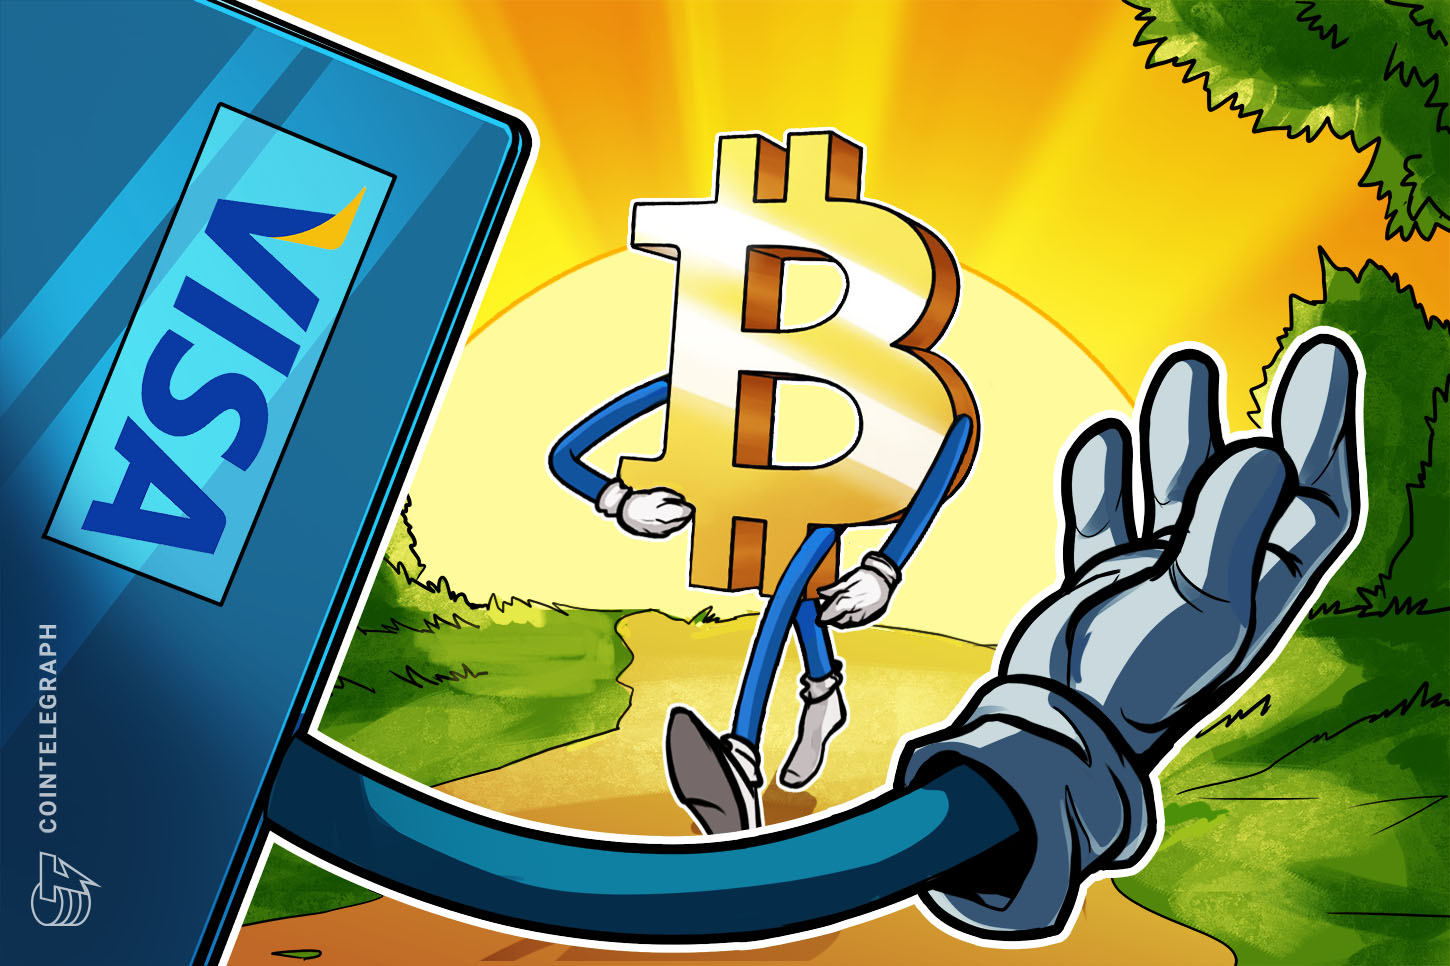 Visa to approve Bitcoin spending card for Australian startup CryptoSpend